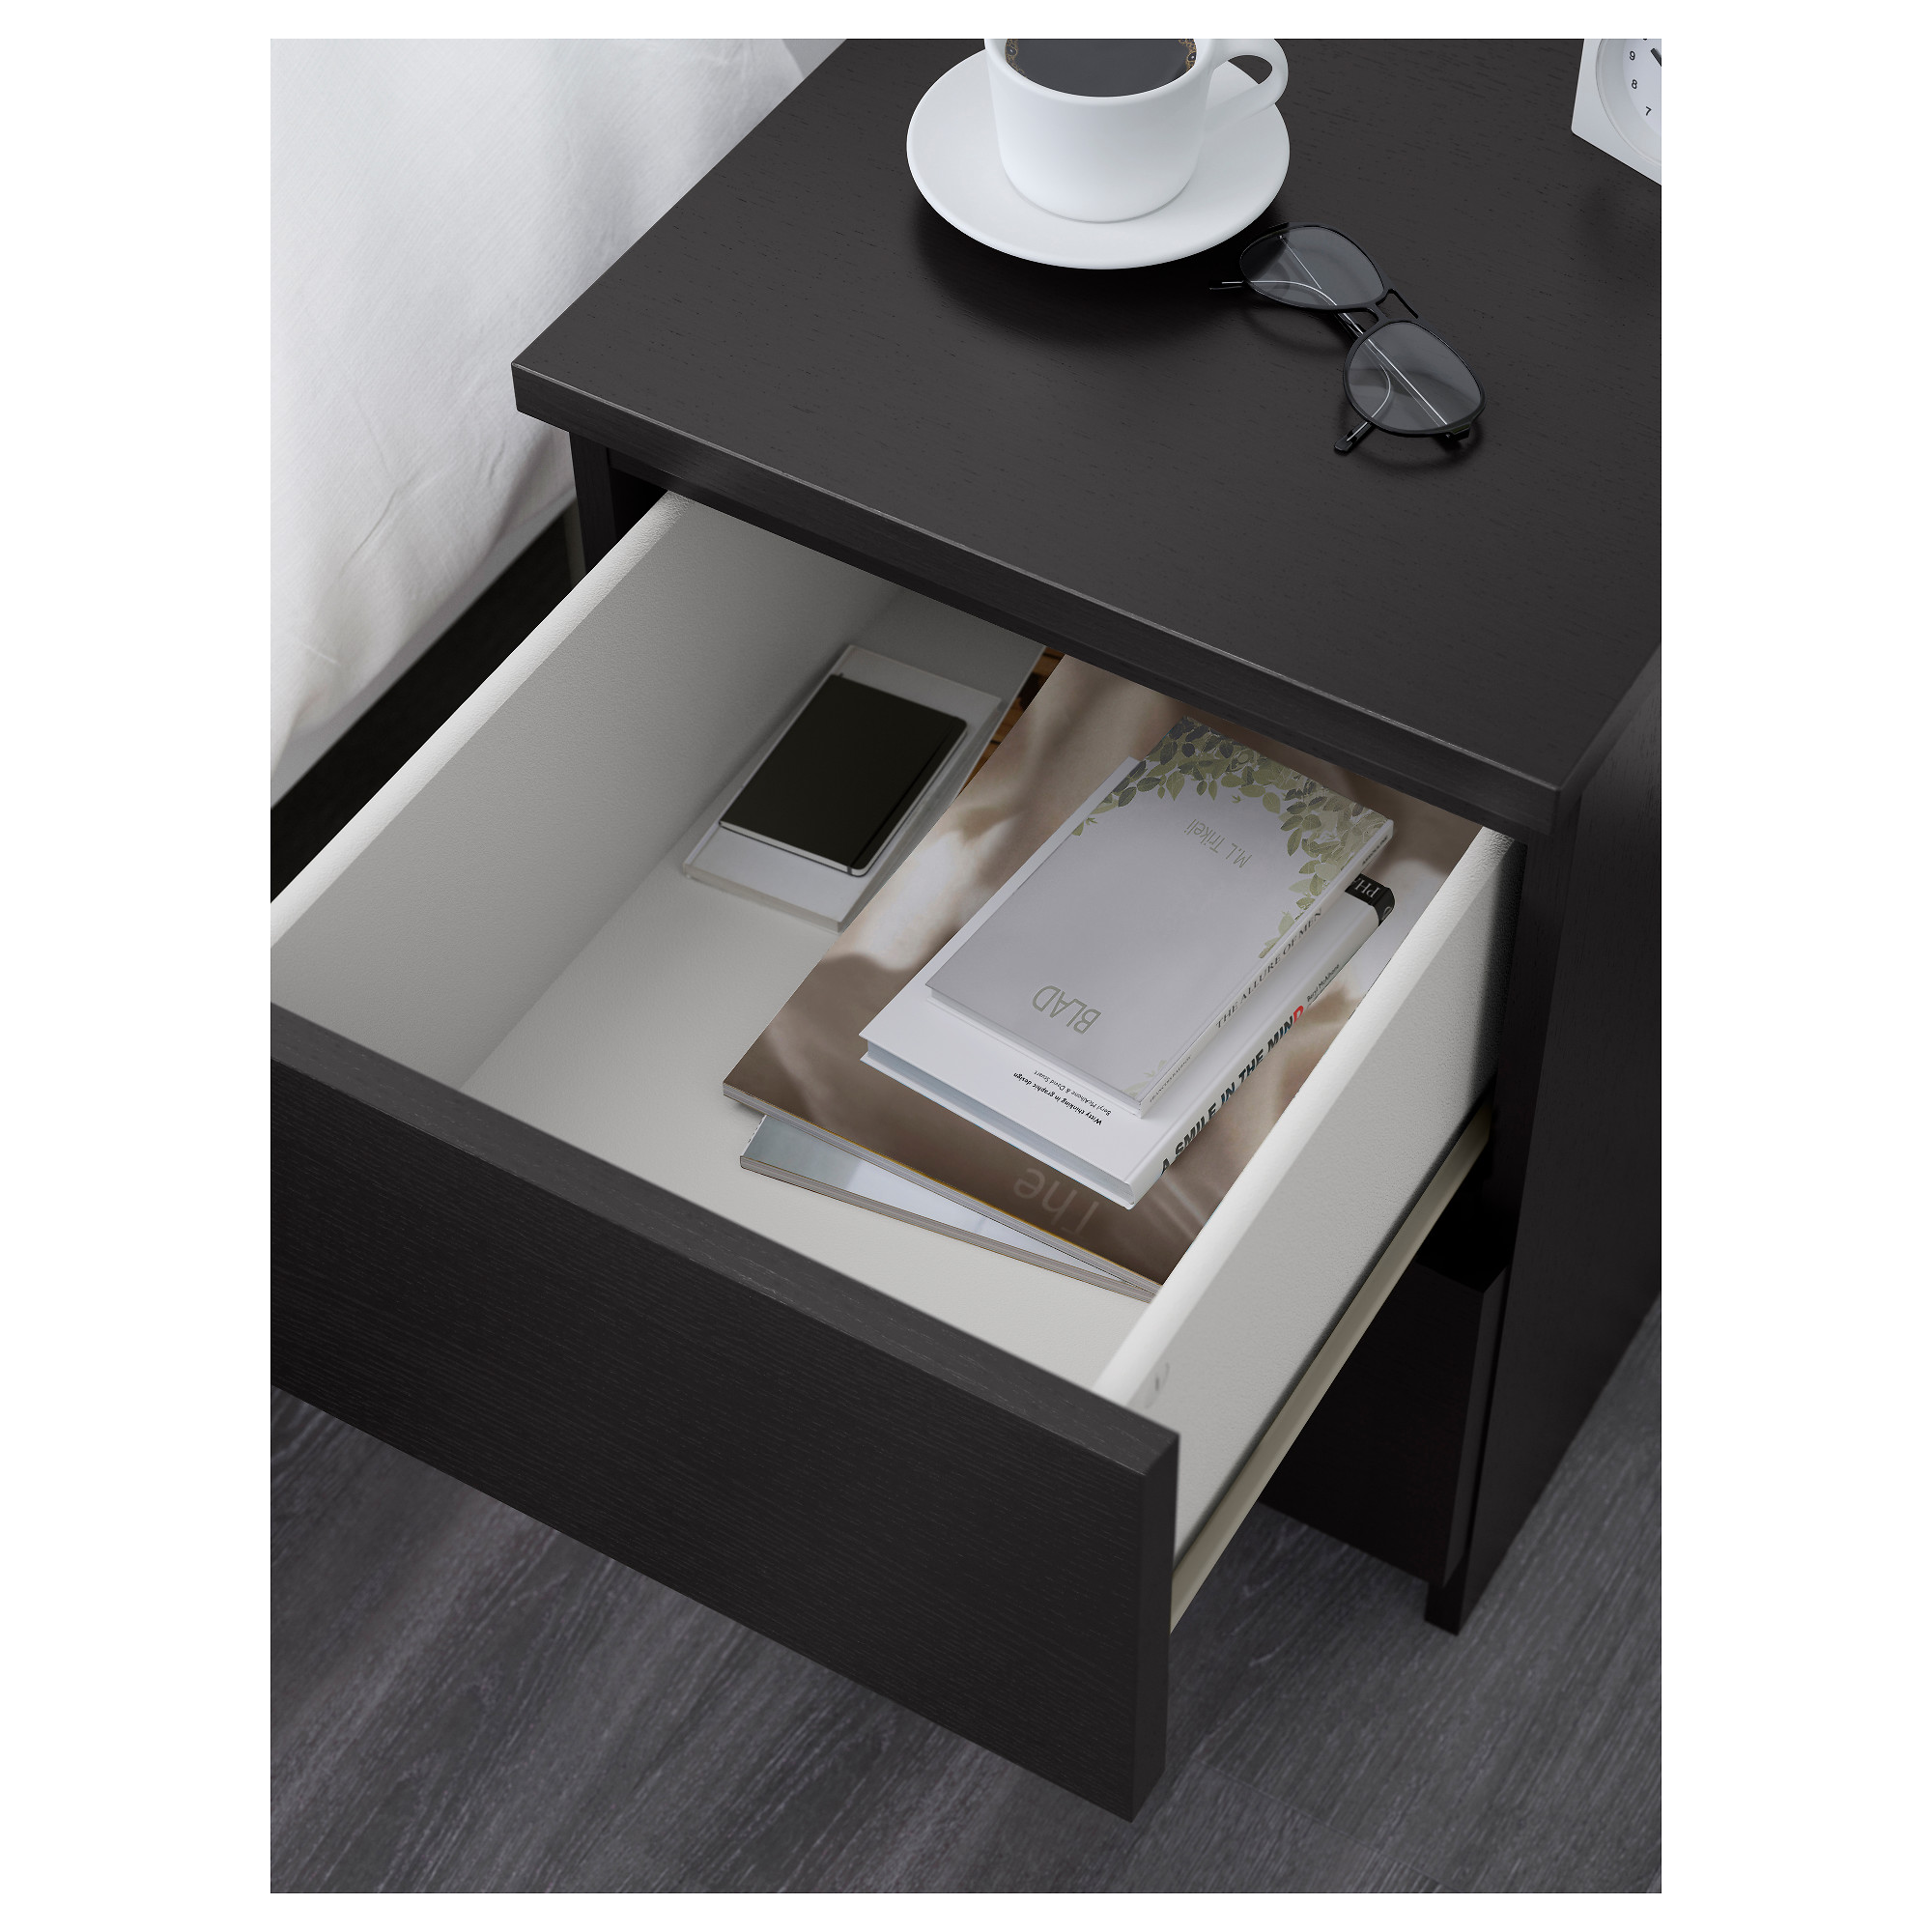 with wood finish drawer wdrawers modern p drawers table coffee image black options w